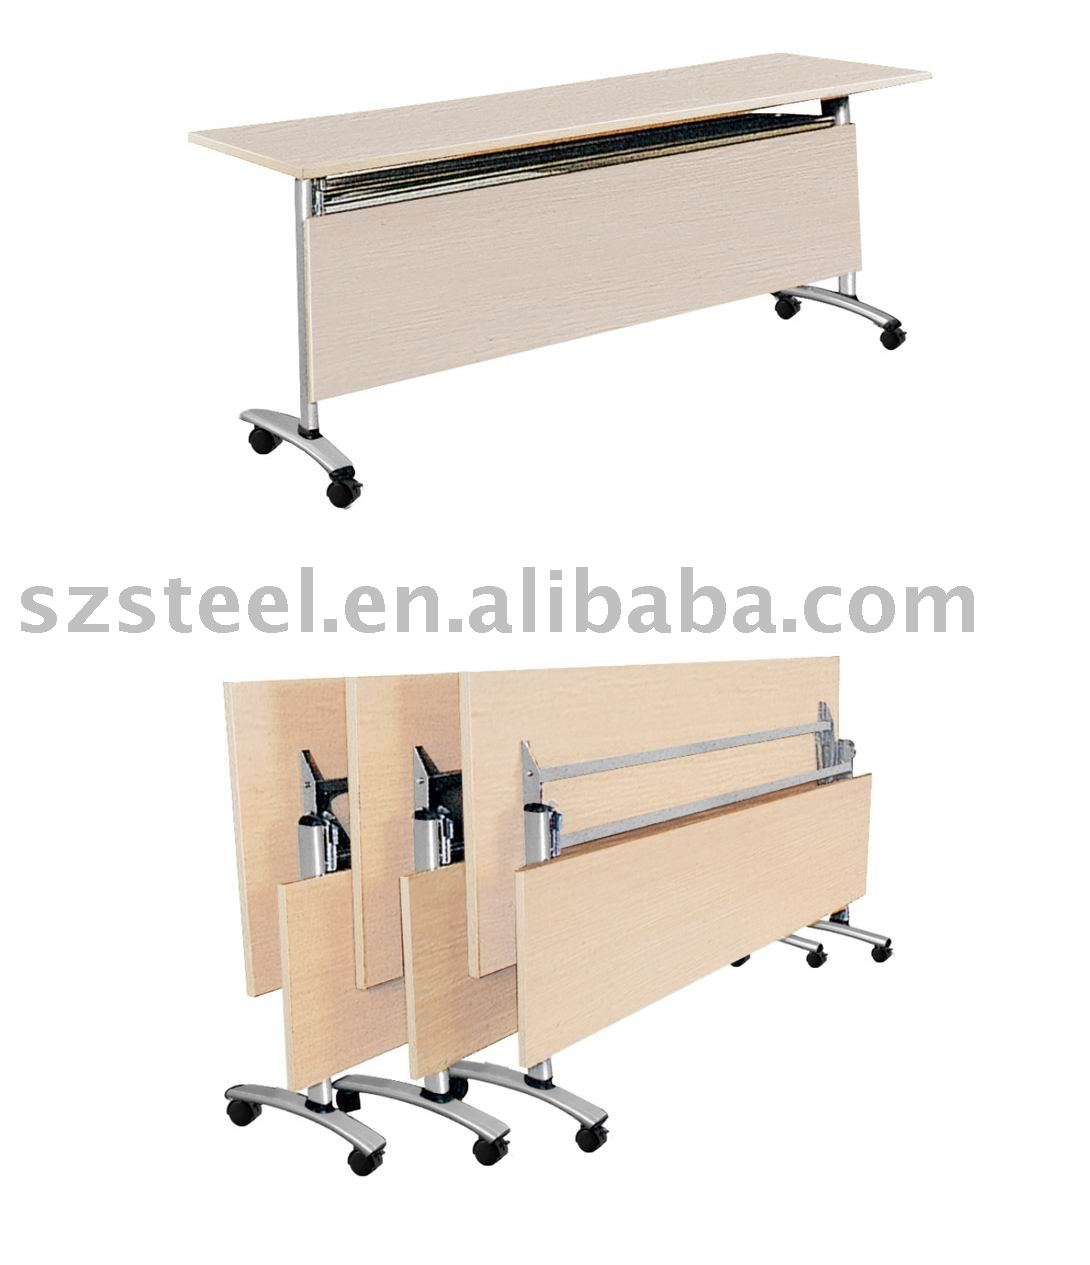 Wooden Foldable Training Table Folding Table Desk Buy Conference - Foldable training table